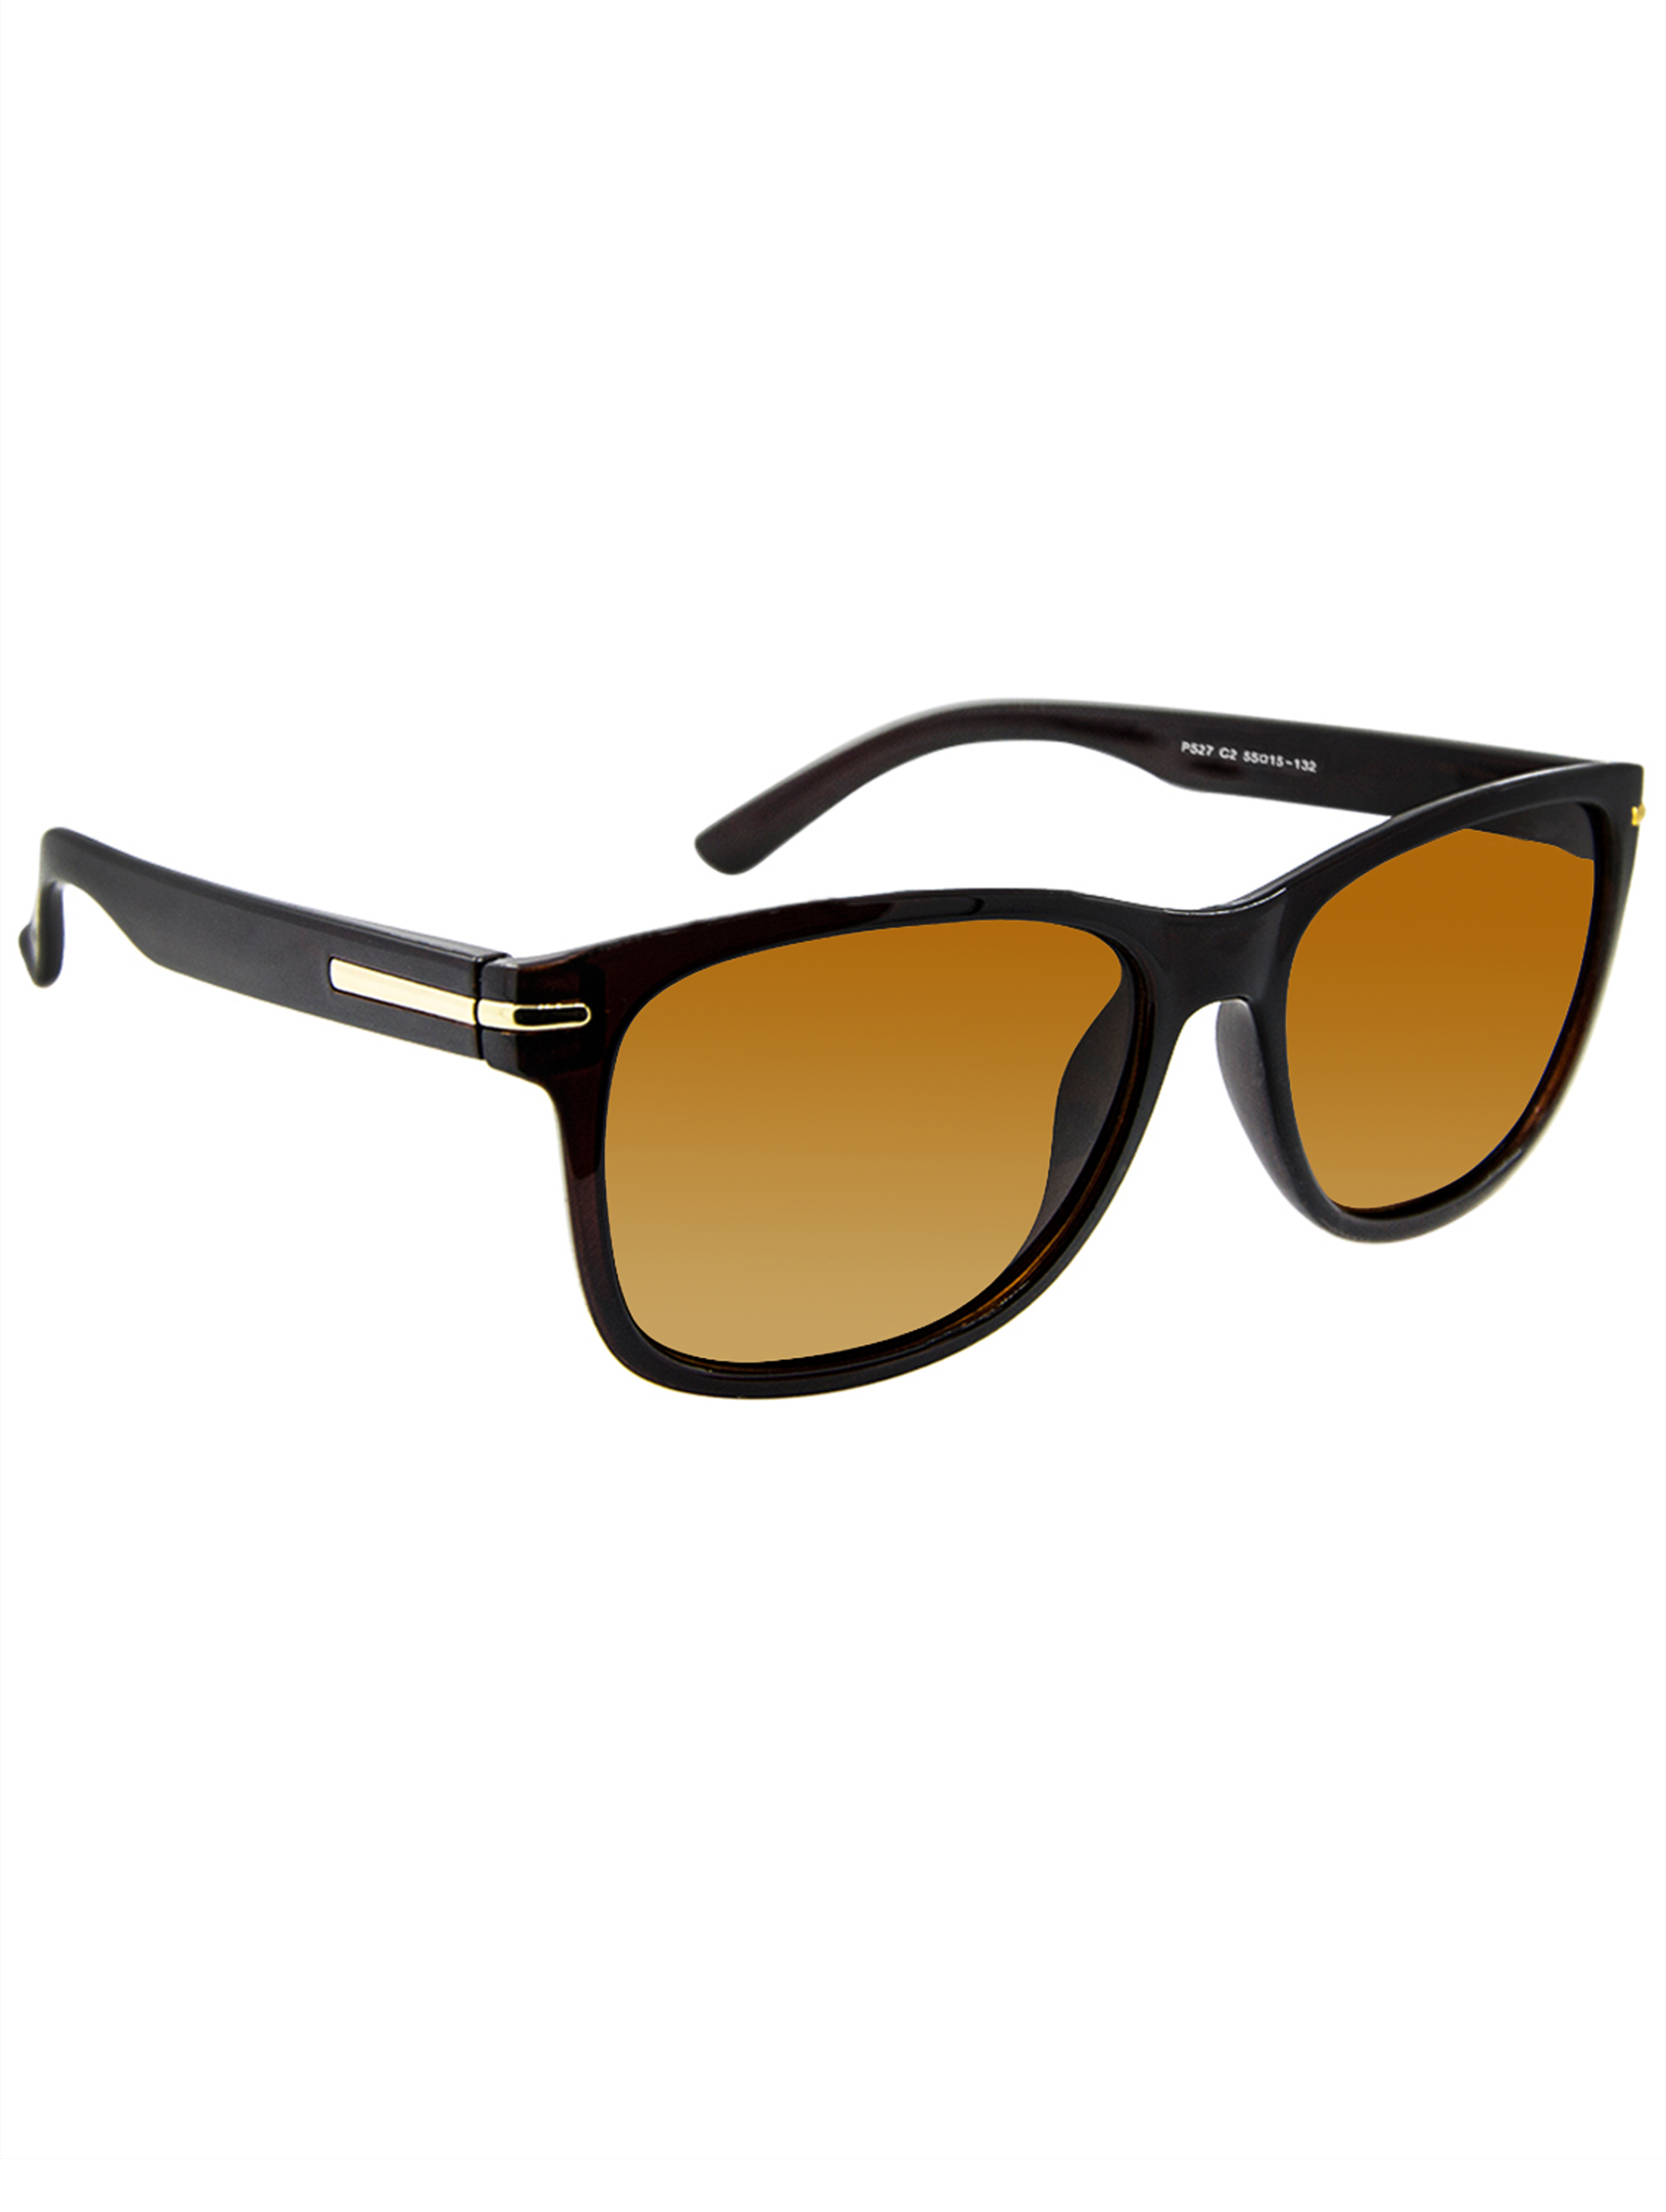 Sunglass Hut is the premier shopping and inspiration destination for the top brands, latest trends and exclusive styles of high quality fashion and performance sunglasses.